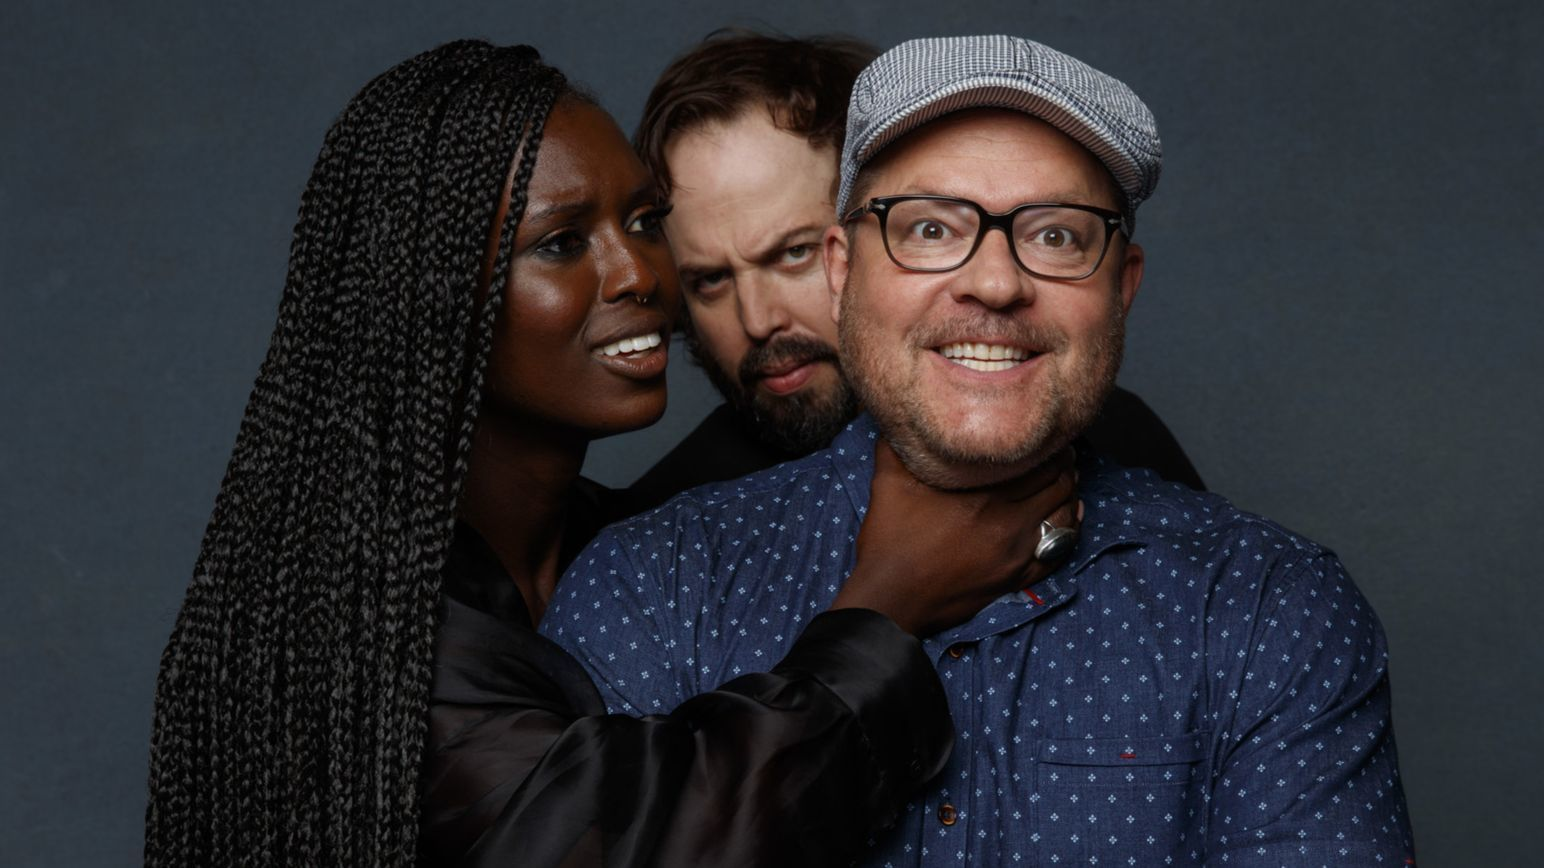 SAN DIEGO, CALIF. -- JULY 19, 2018-- Jodie Turner-Smith, Angus Sampson and Jeff Buhler (EP) from th